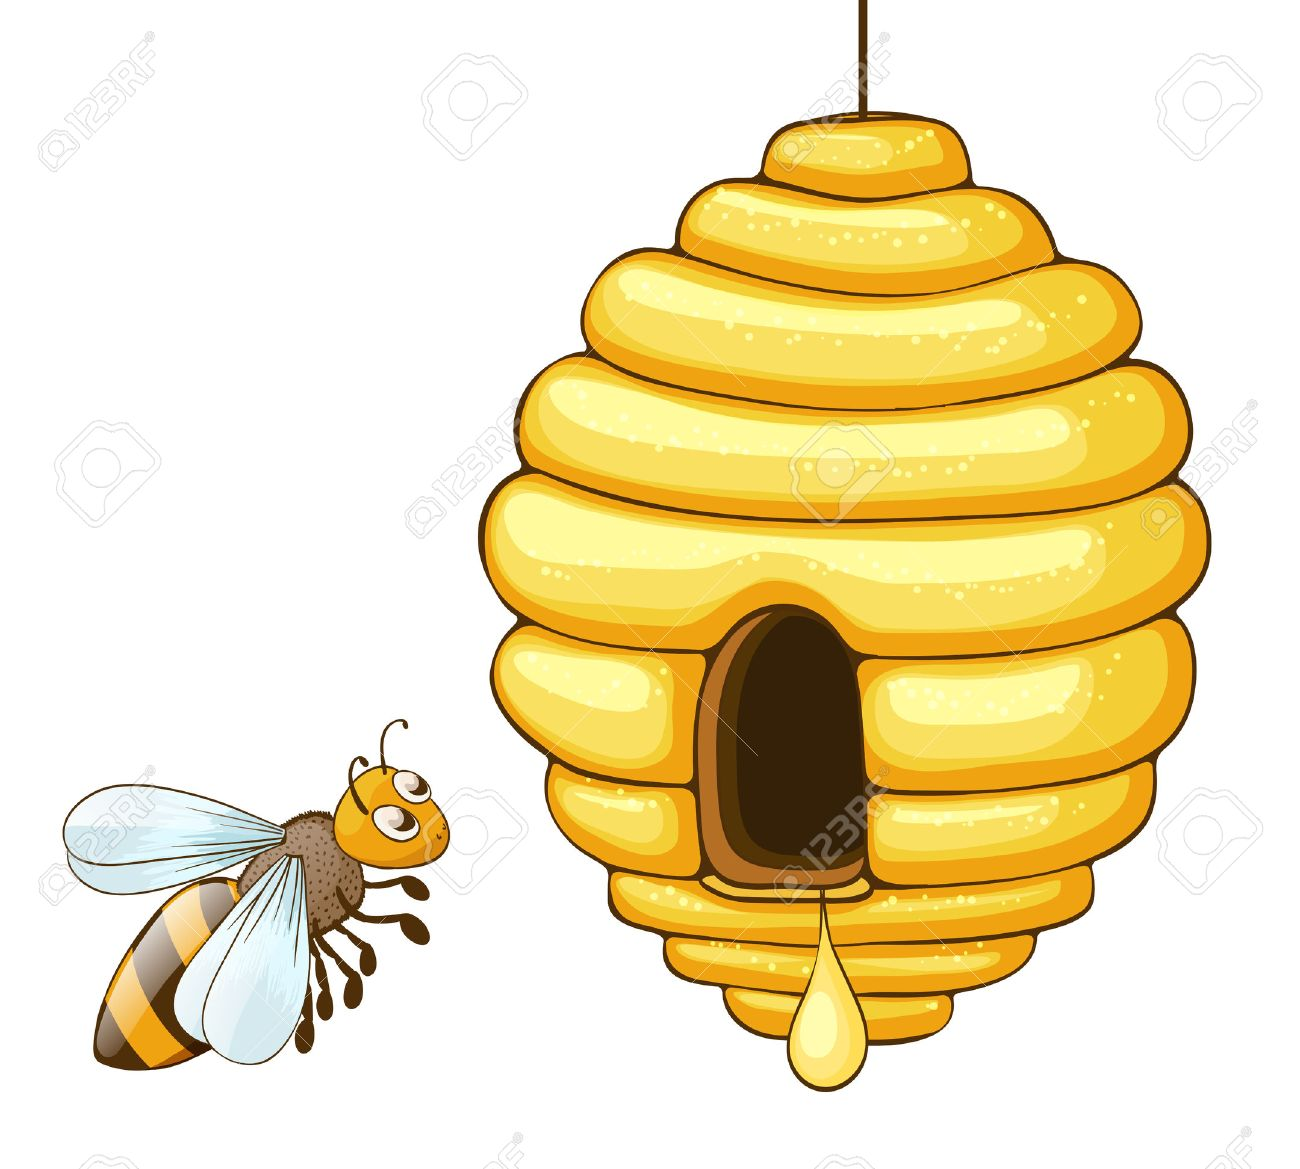 61099137-bee-flying-and-beehive-with-honey-drop-vector-illustration.jpg